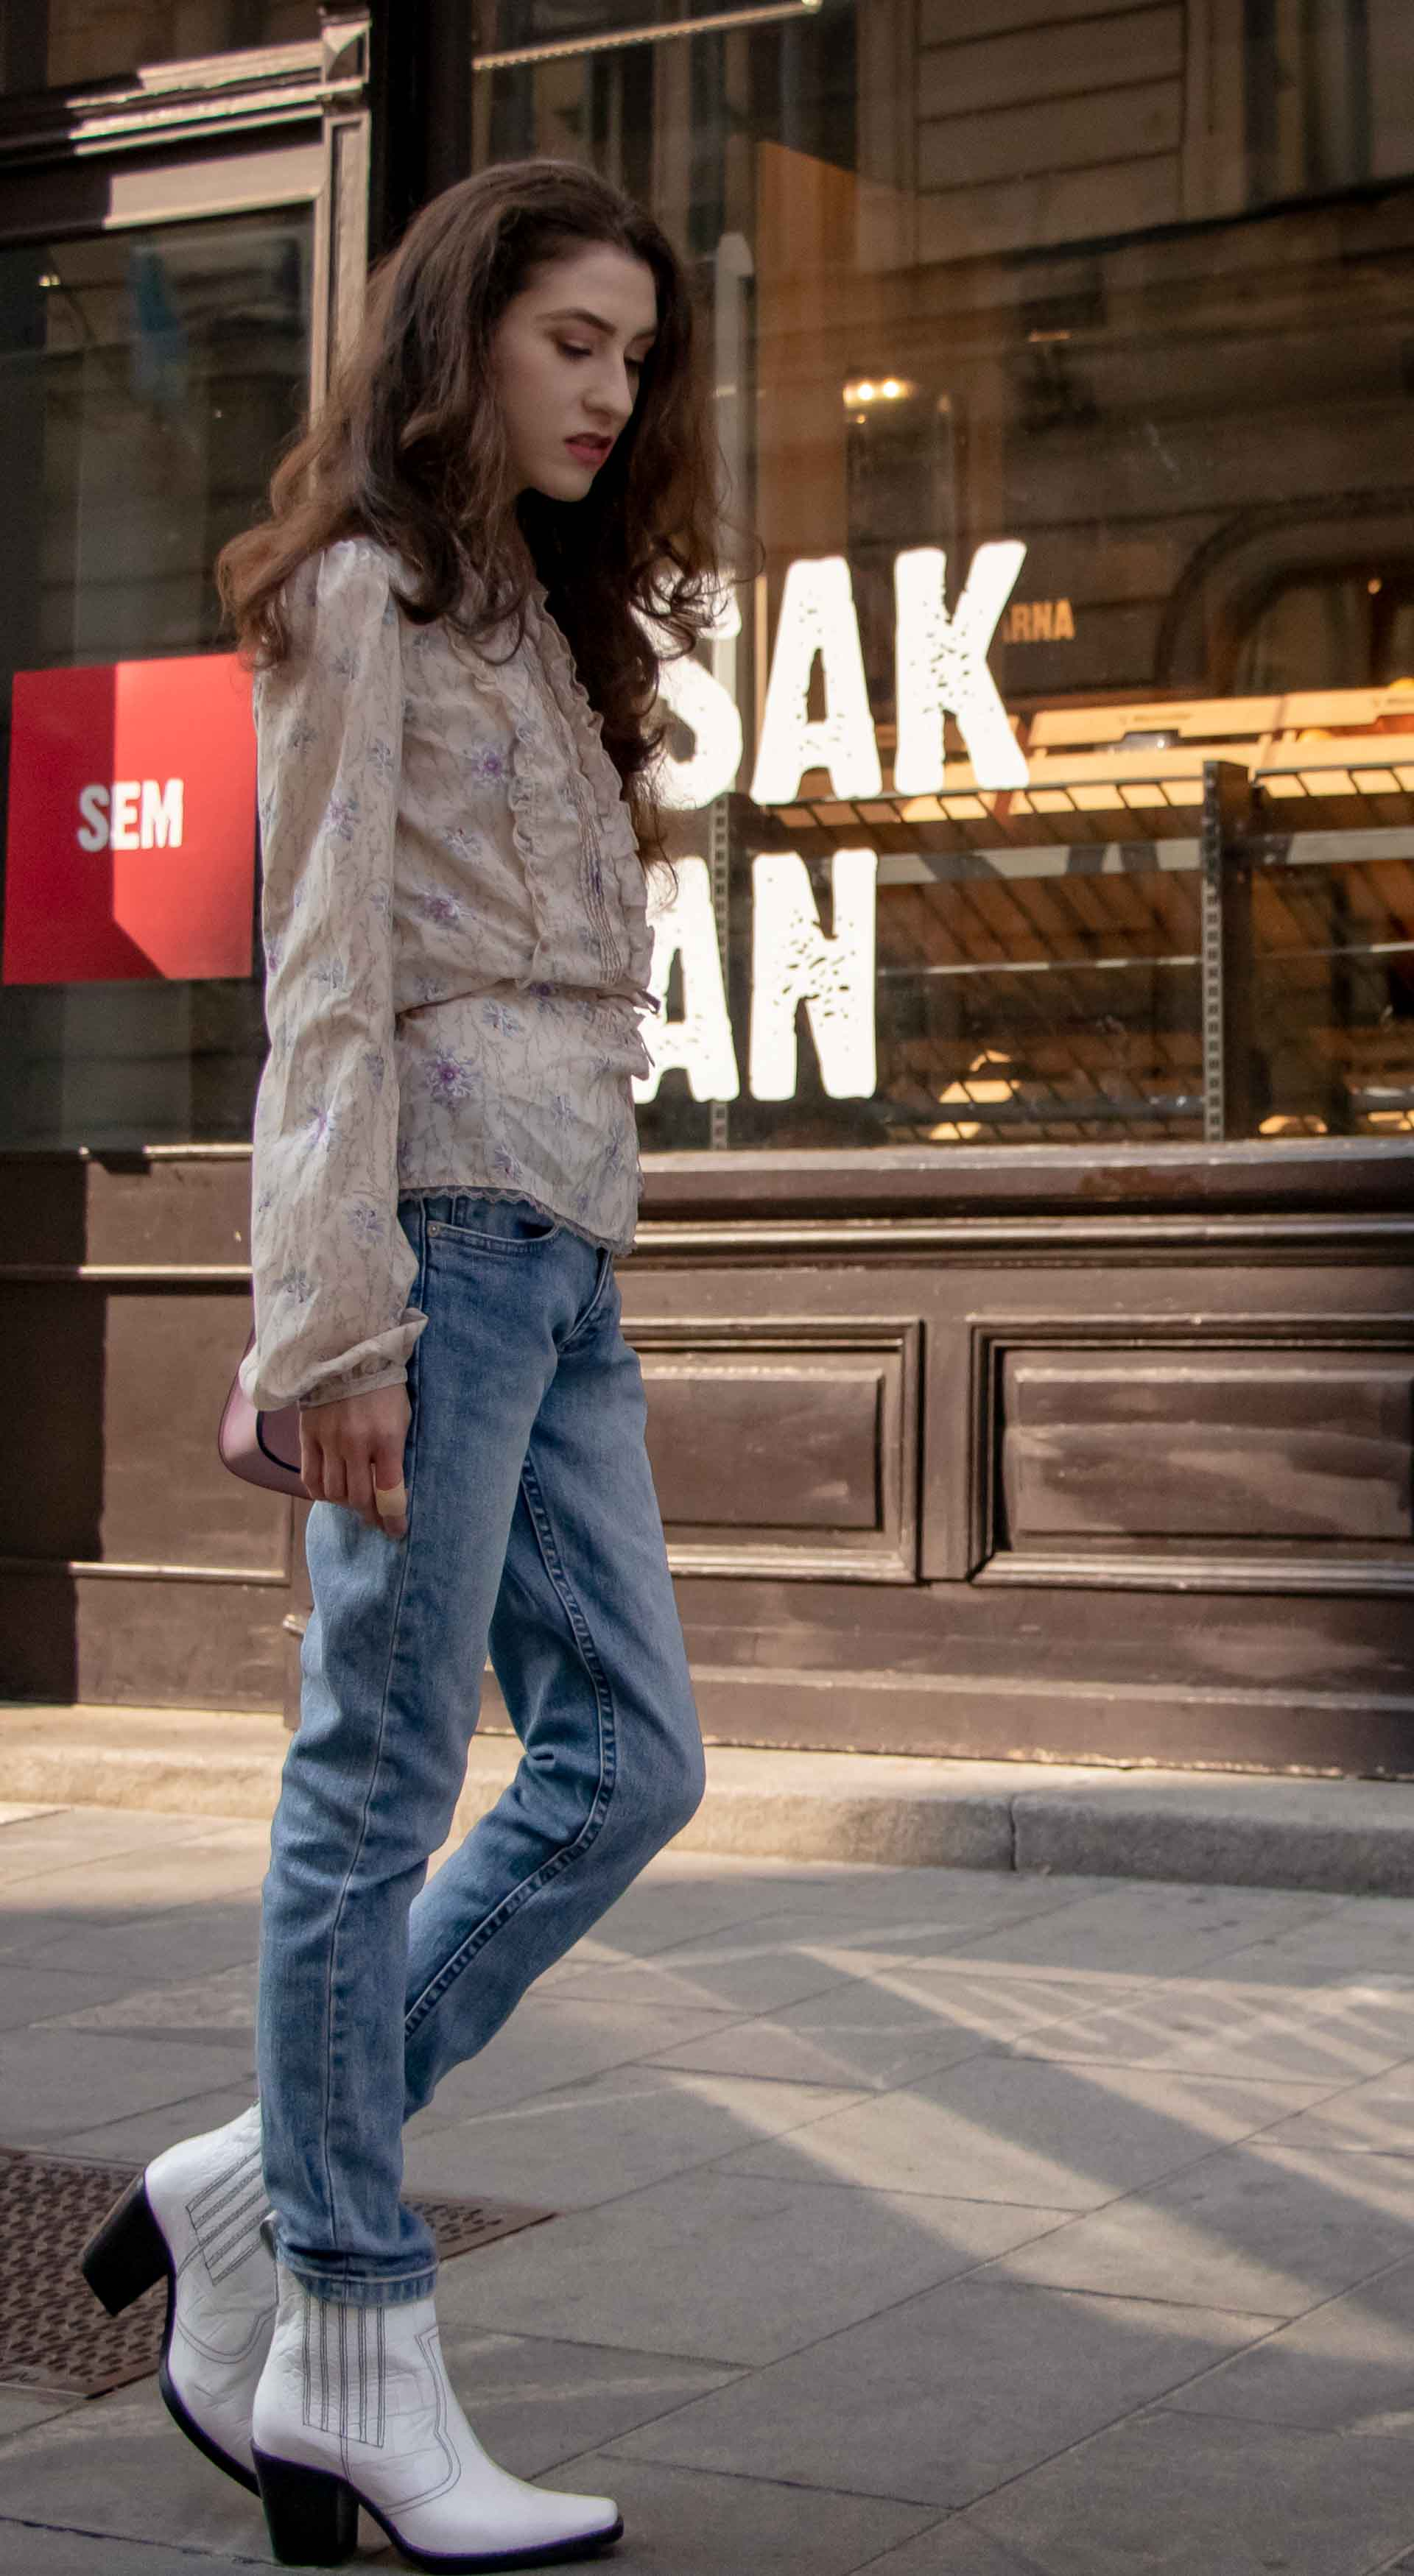 Beautiful Slovenian Fashion Blogger Veronika Lipar of Brunette from Wall dressed in white Ganni Western boots, floral long sleeved Prairie shirt, A.P.C. blue jeans on the street in fall in Ljubljana